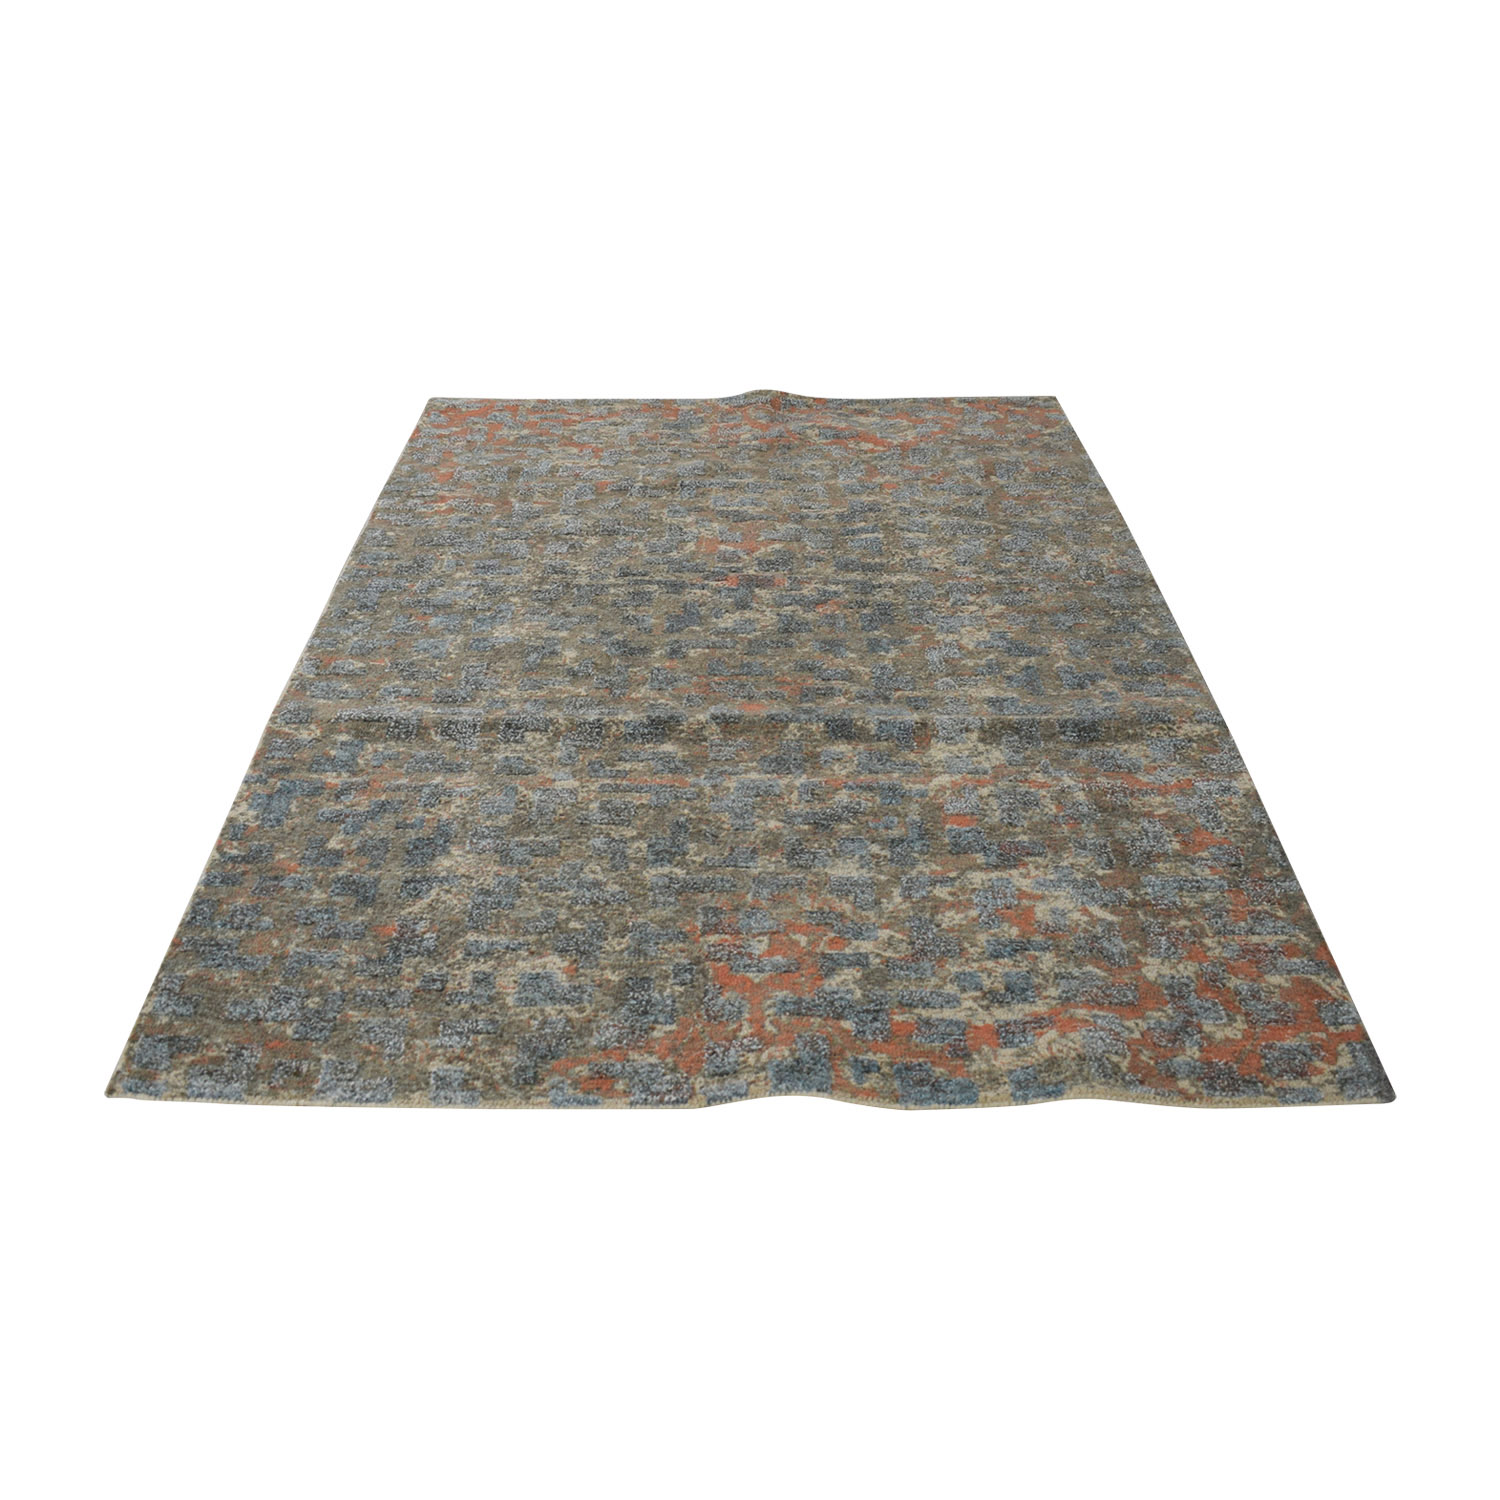 Obeetee 5X8 Blue and Coral Handtufted Rug / Rugs